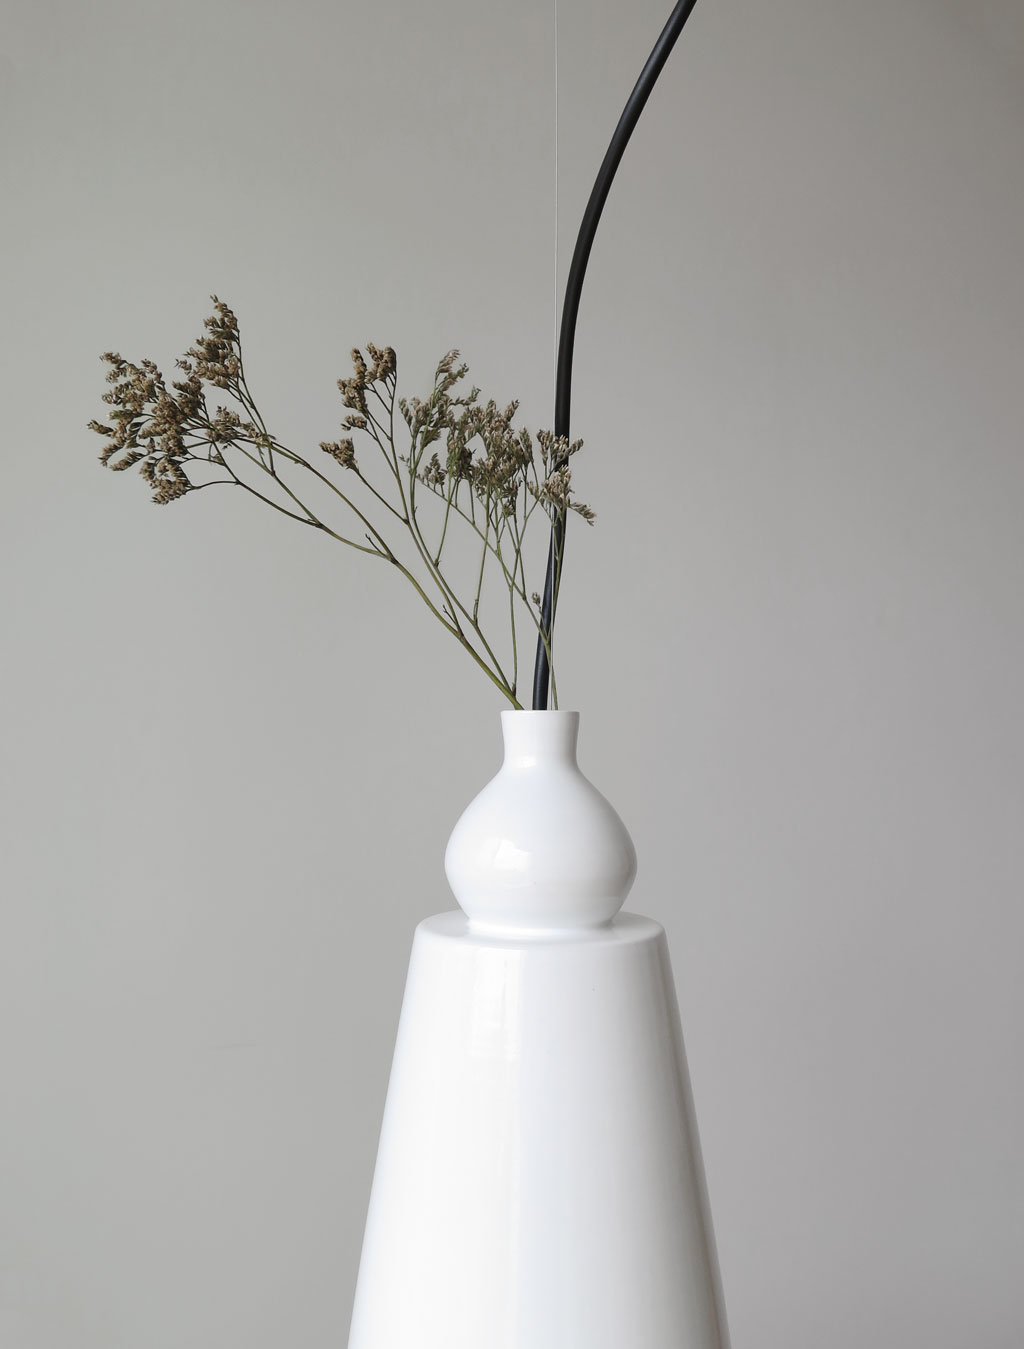 Vase lamp designed by Martin Azua for Numbered